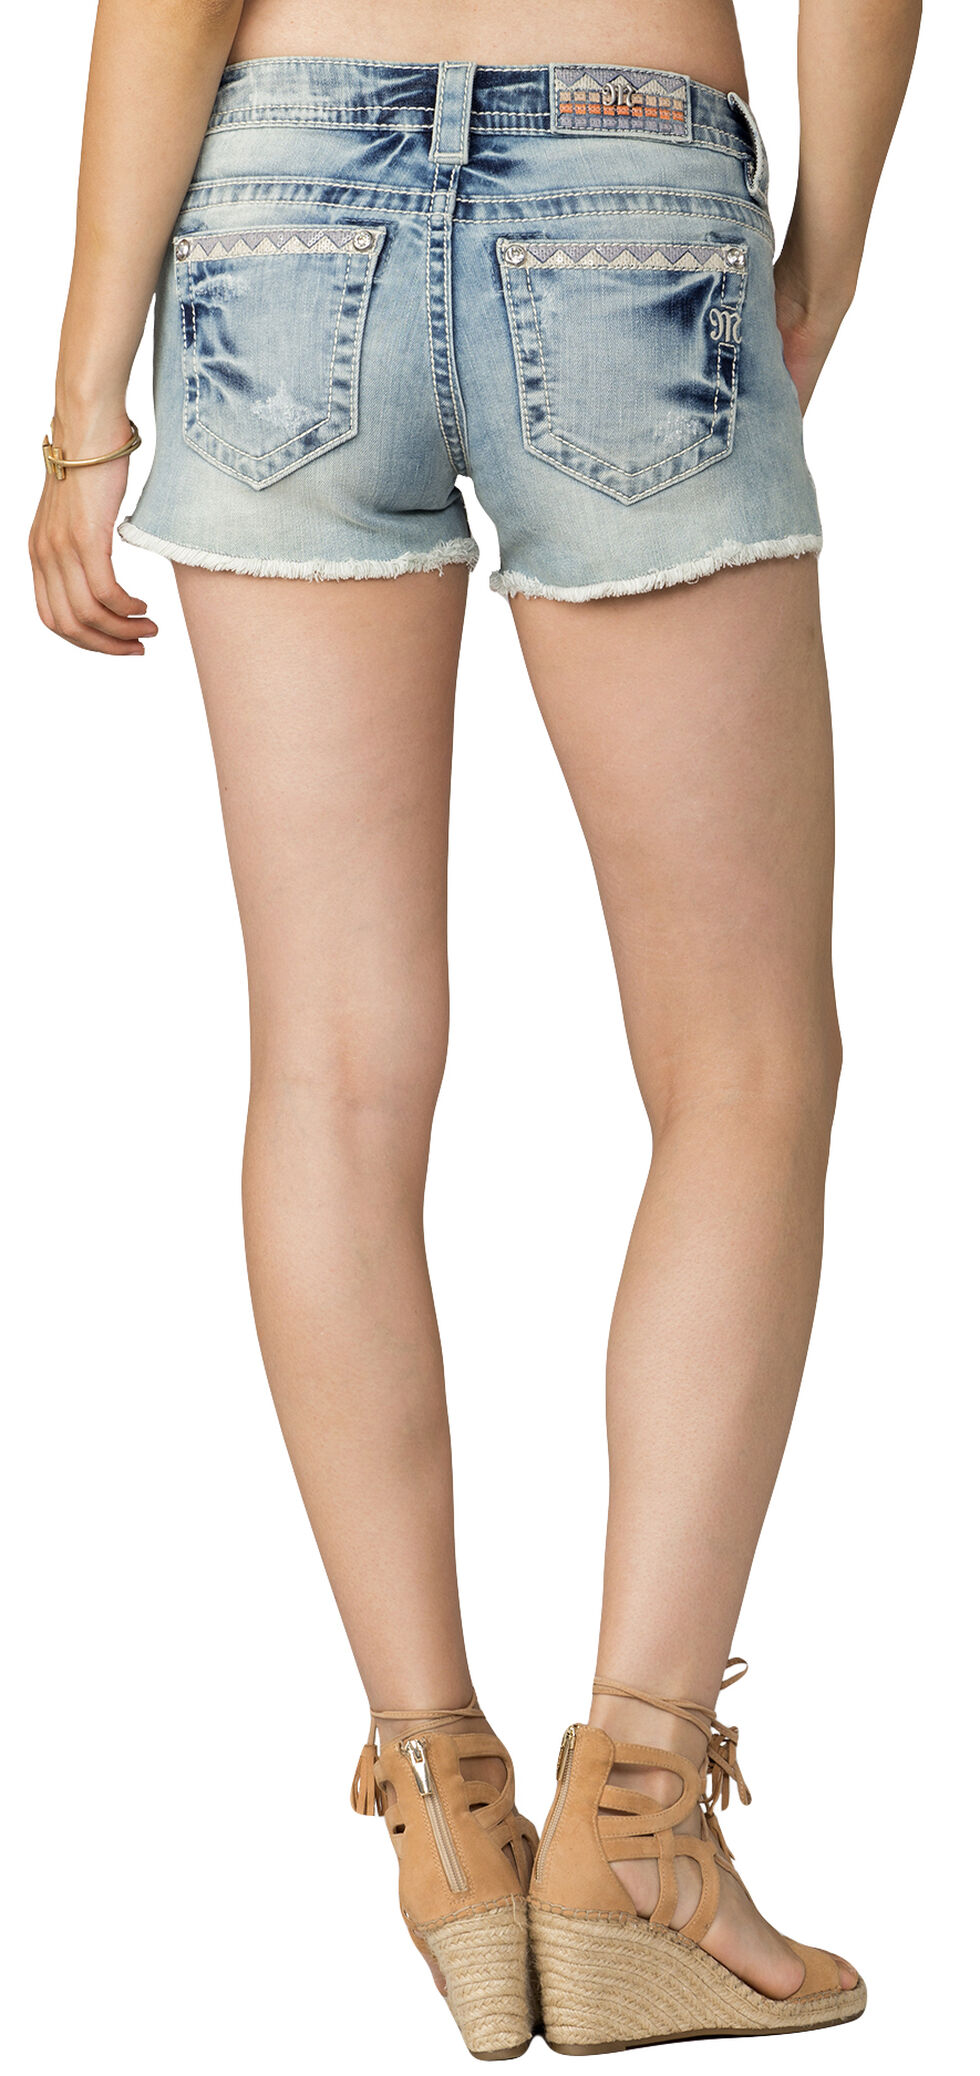 Miss Me Women's Living The Dream Mid-Rise Shorts, Indigo, hi-res